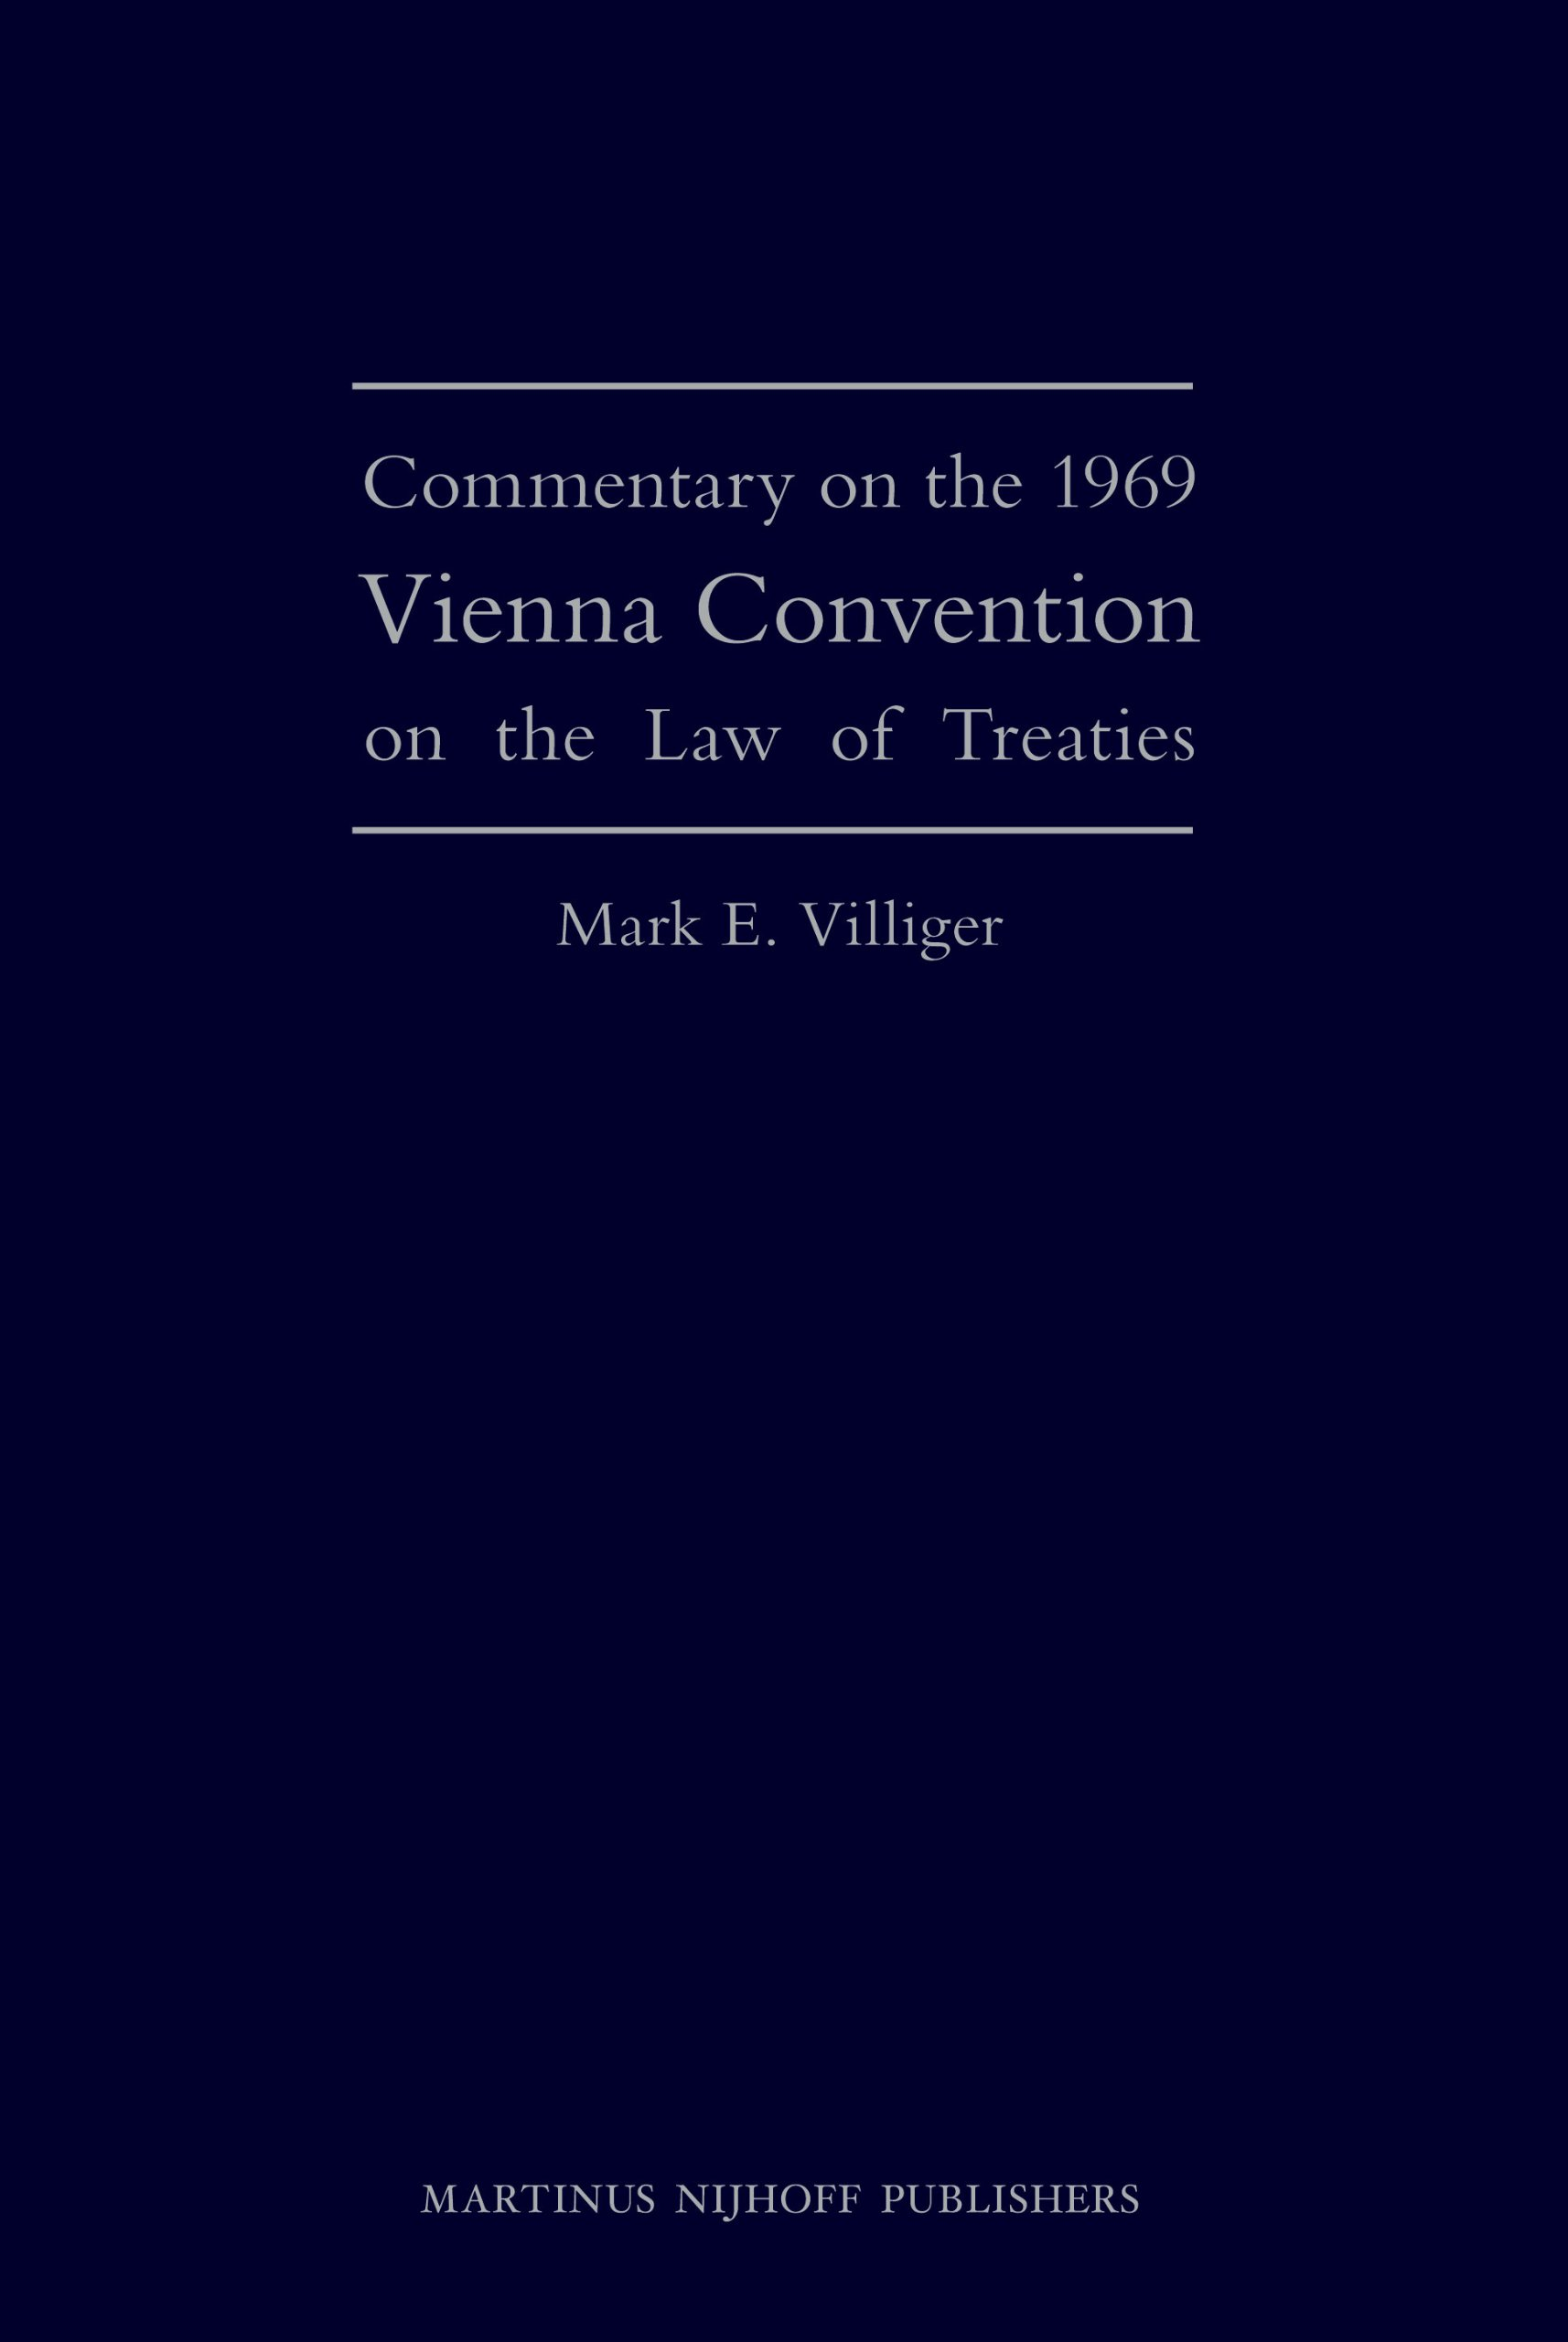 Vienna Convention on the Law of Treaties: A Commentary